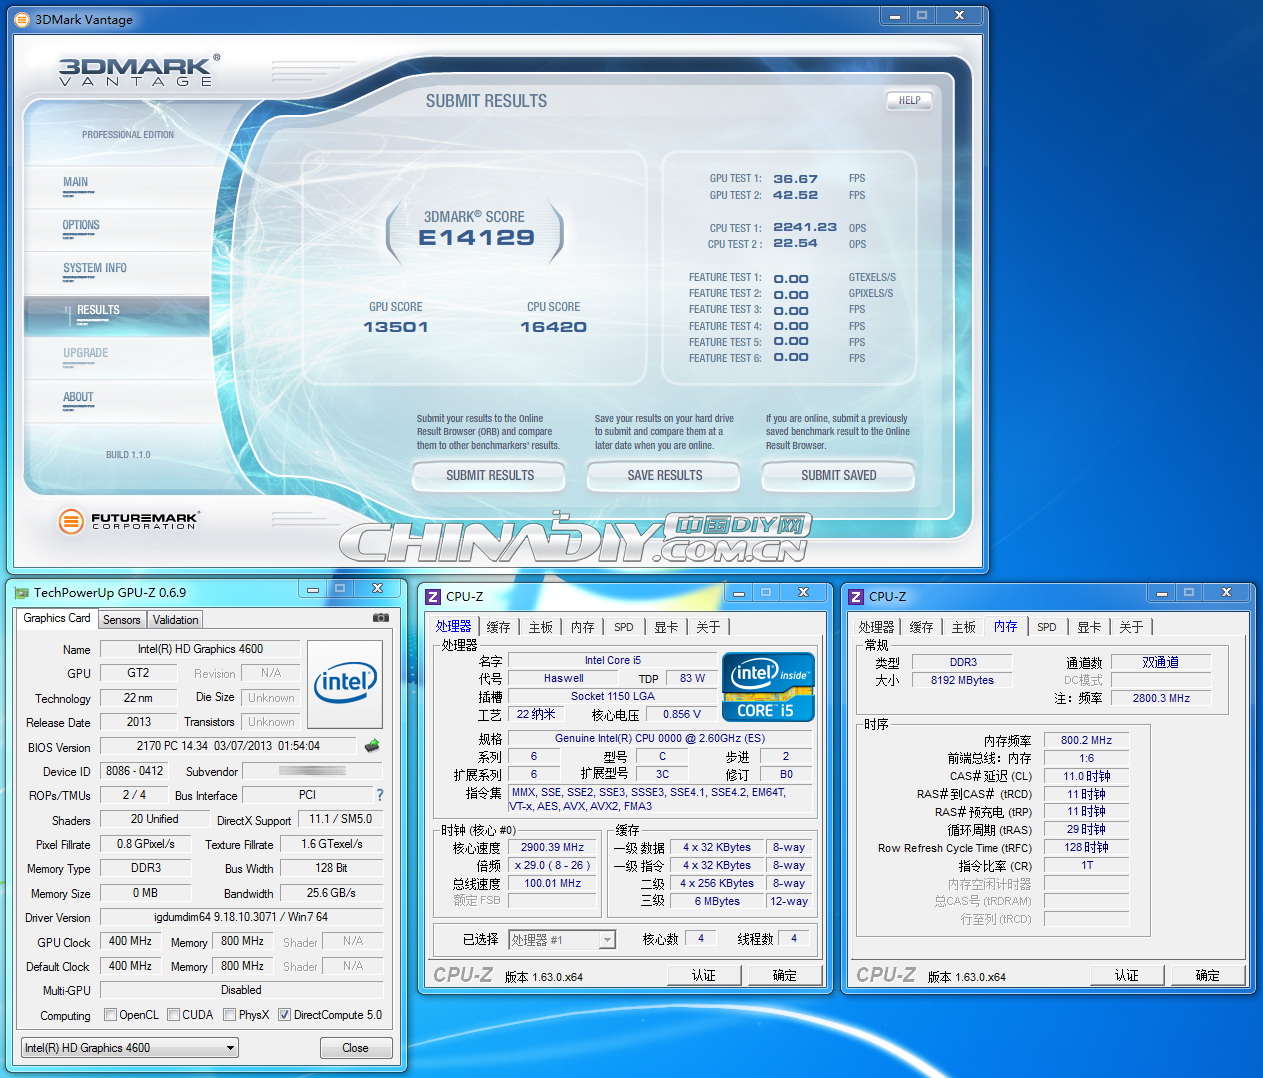 Intel Haswell Core i5 08